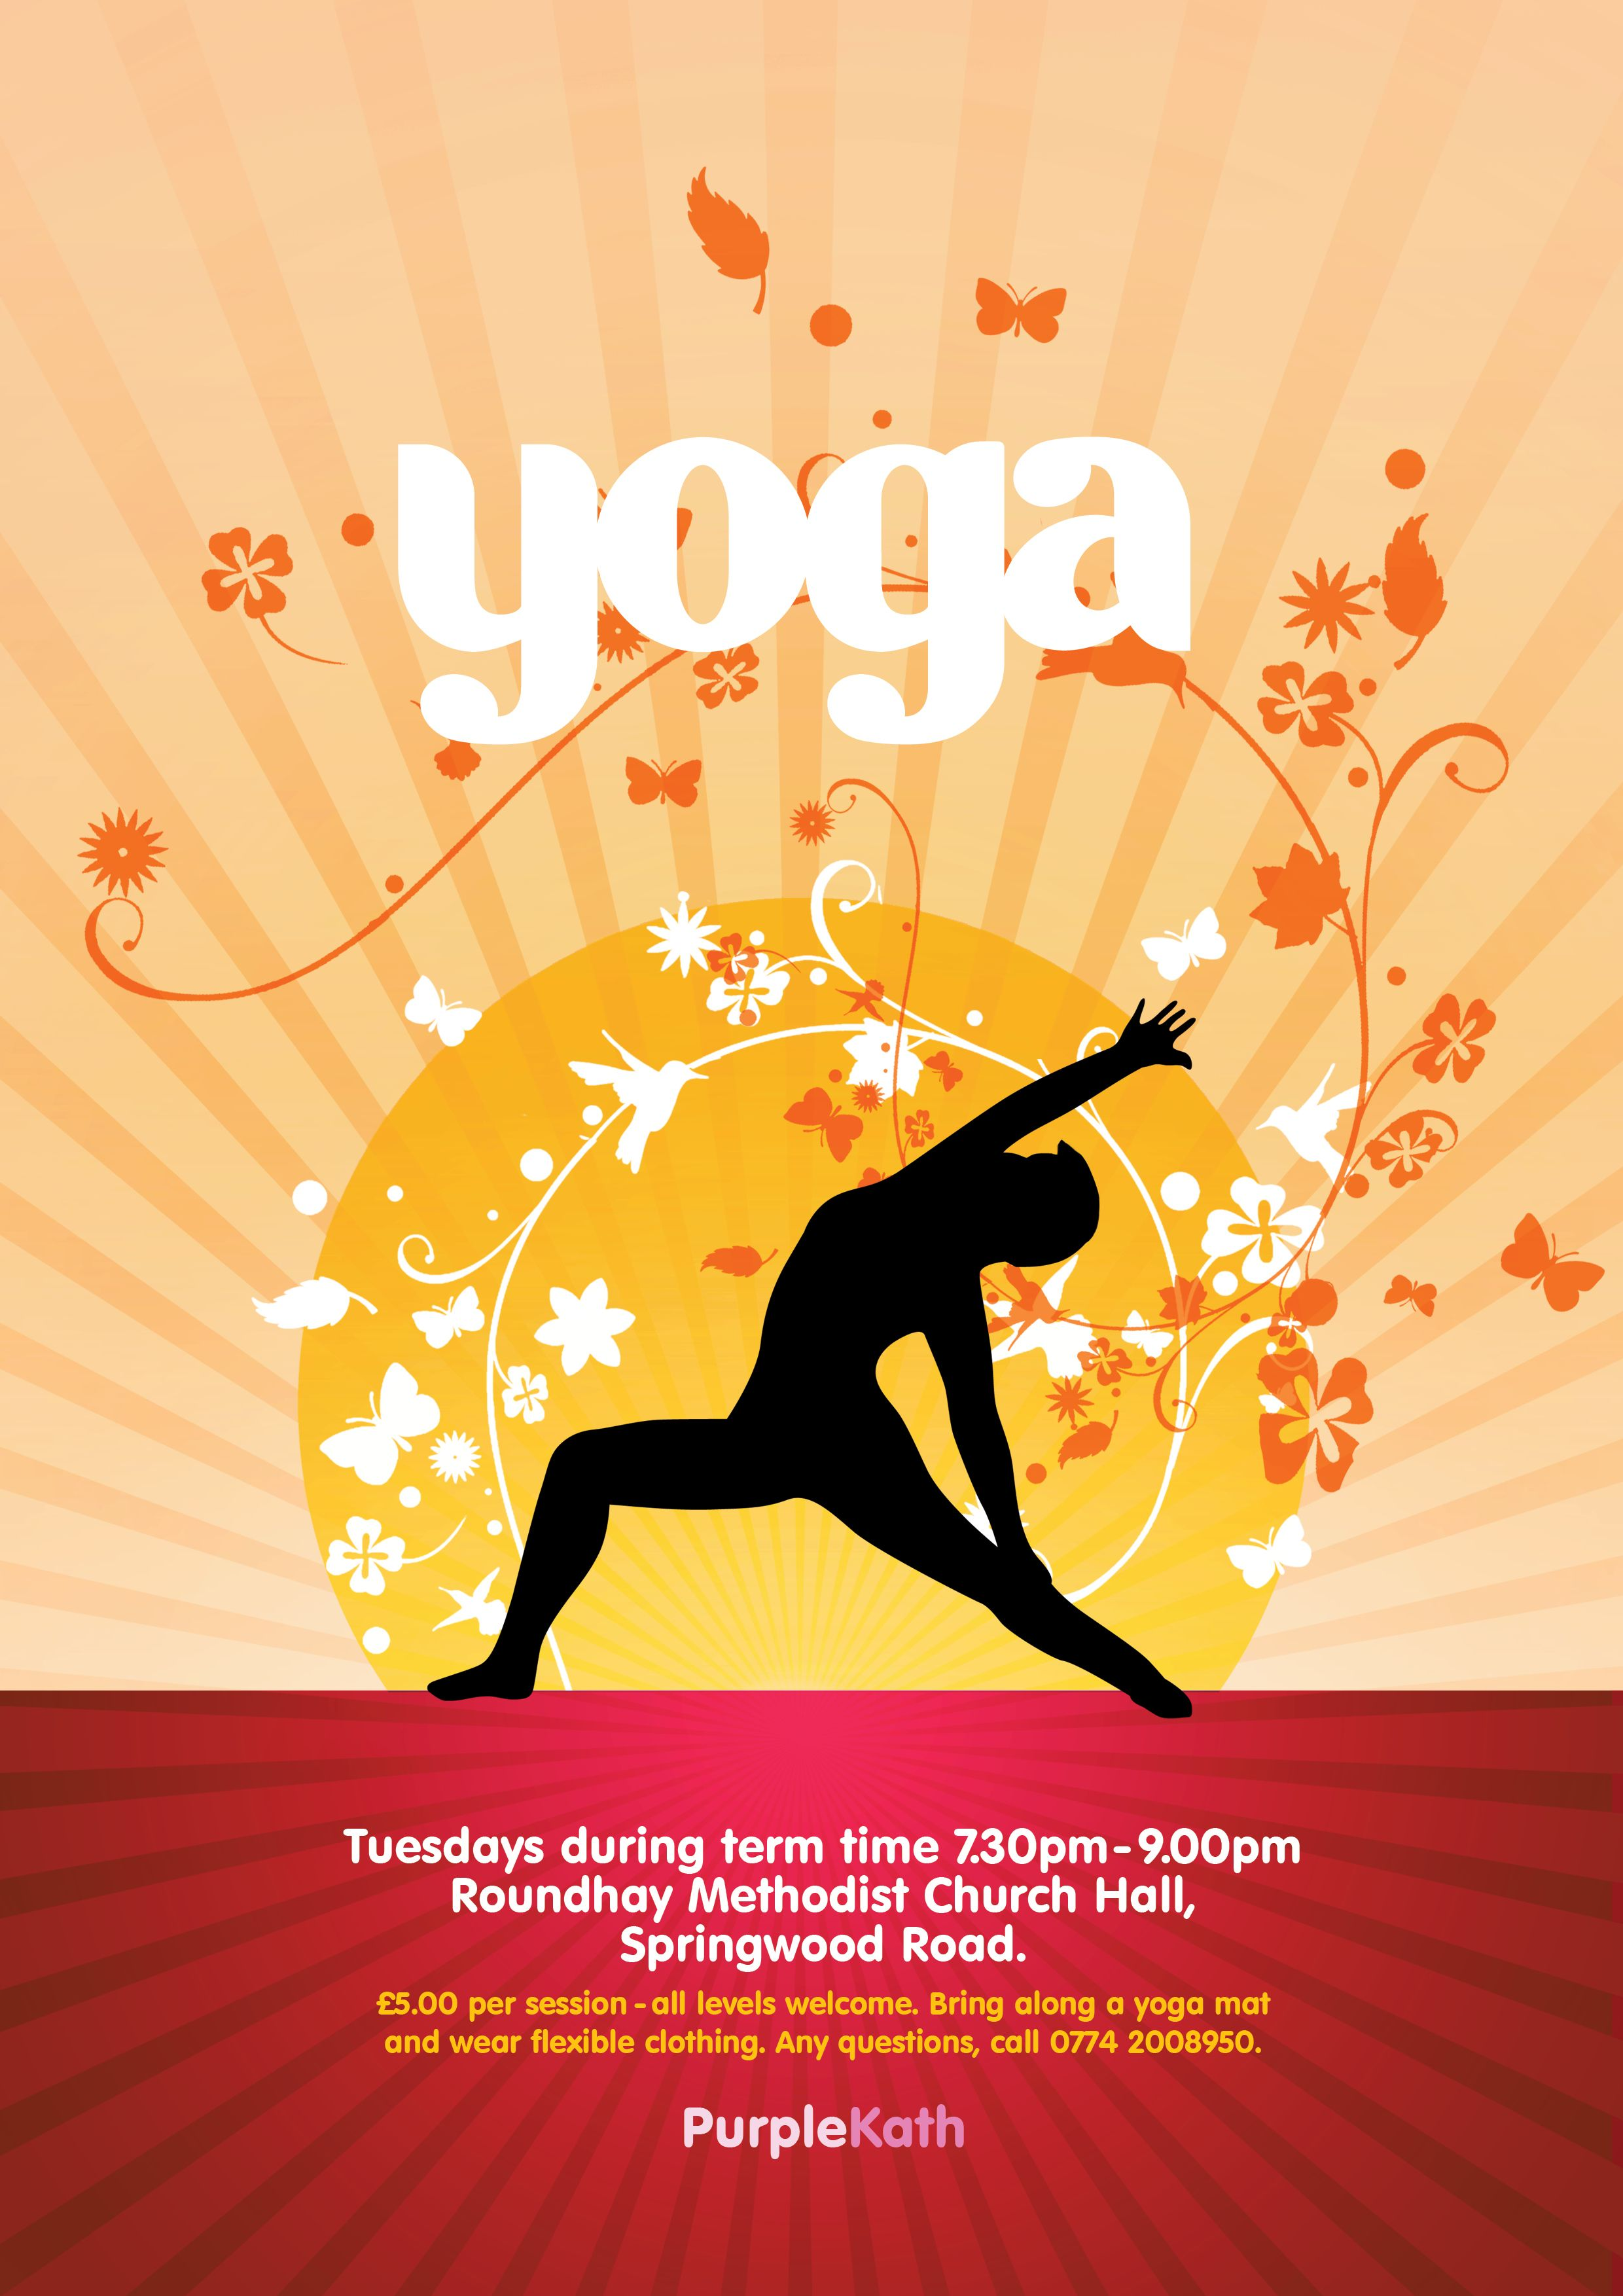 Posters Advertising A Local Yoga Class